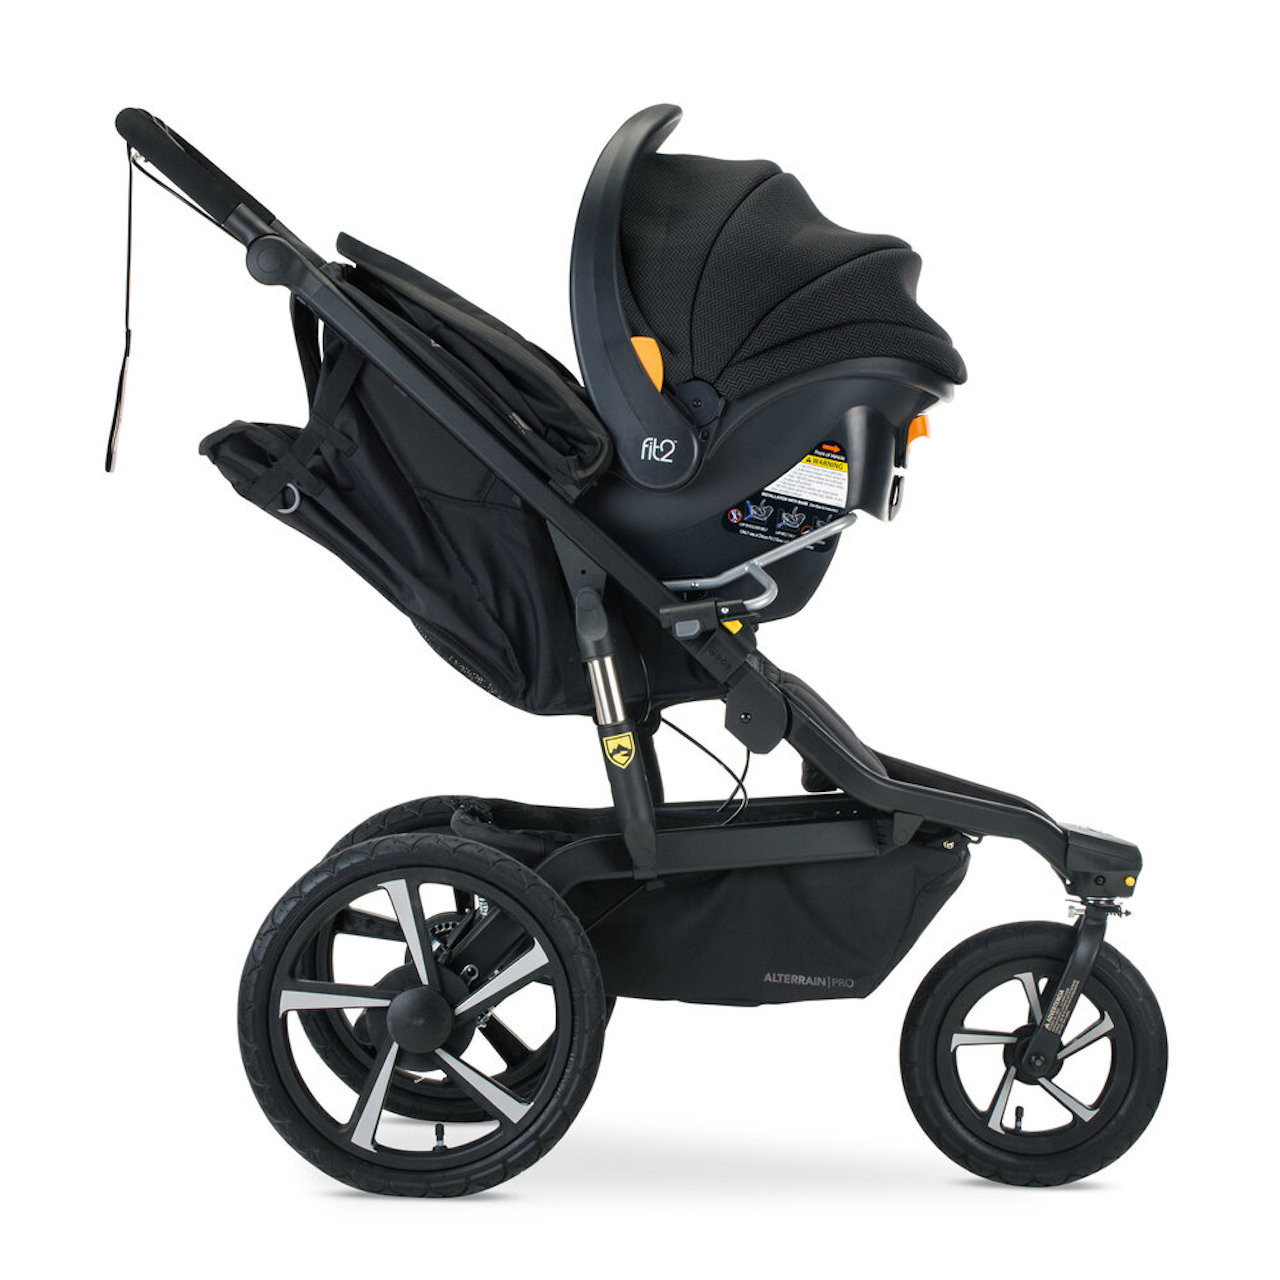 2020 BOB Single Infant Car Seat for Chicco - Installed on Stroller (side view)